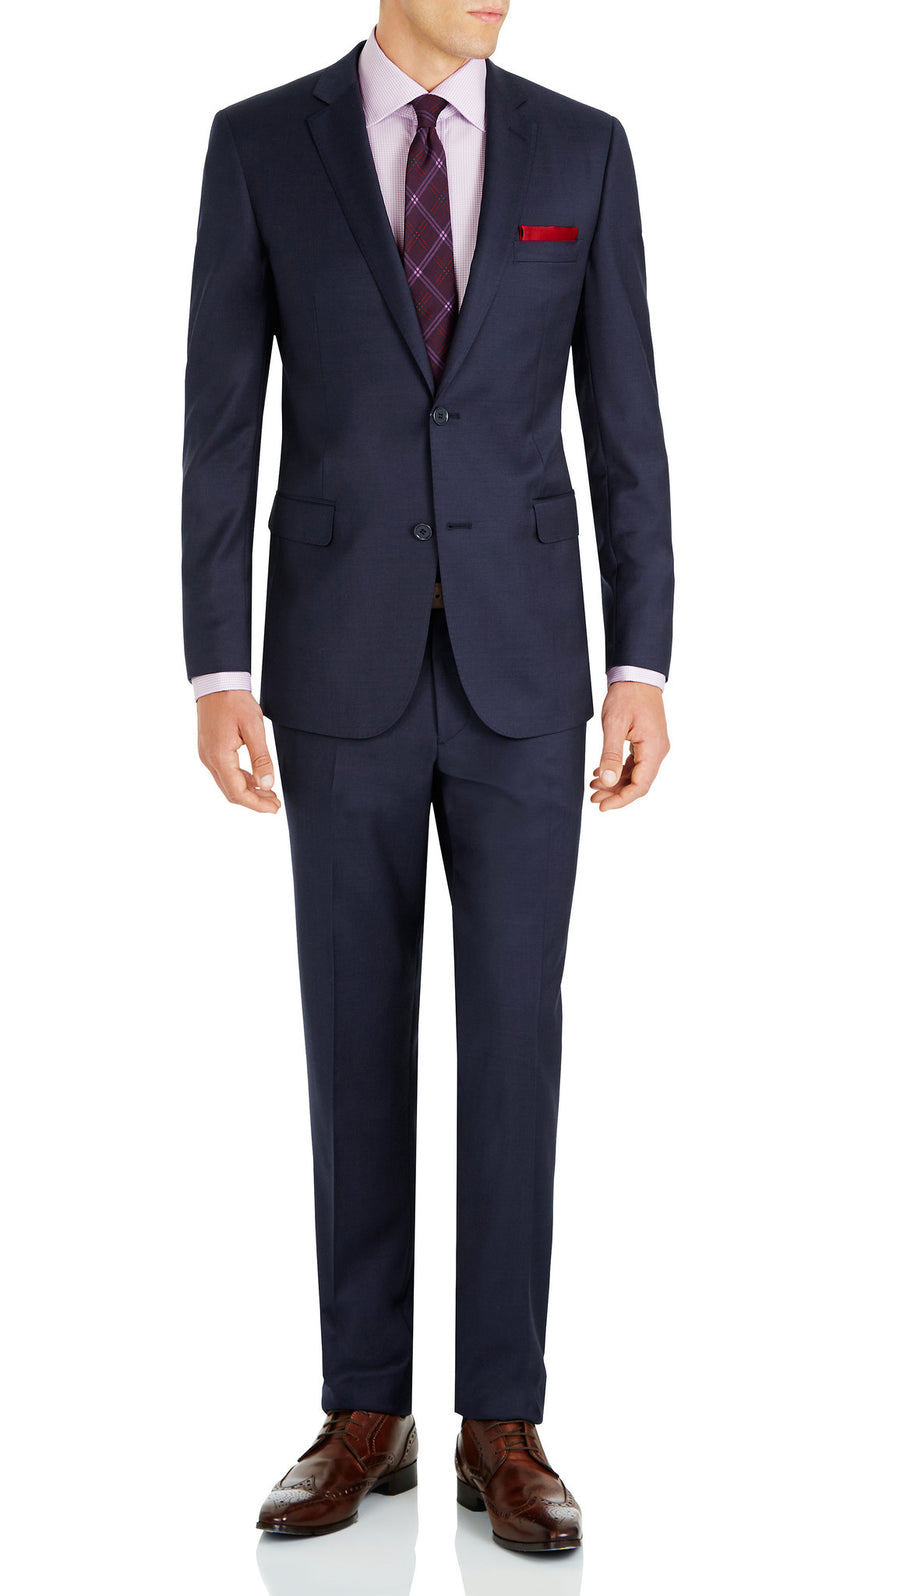 Studio Italia Suit in Blue